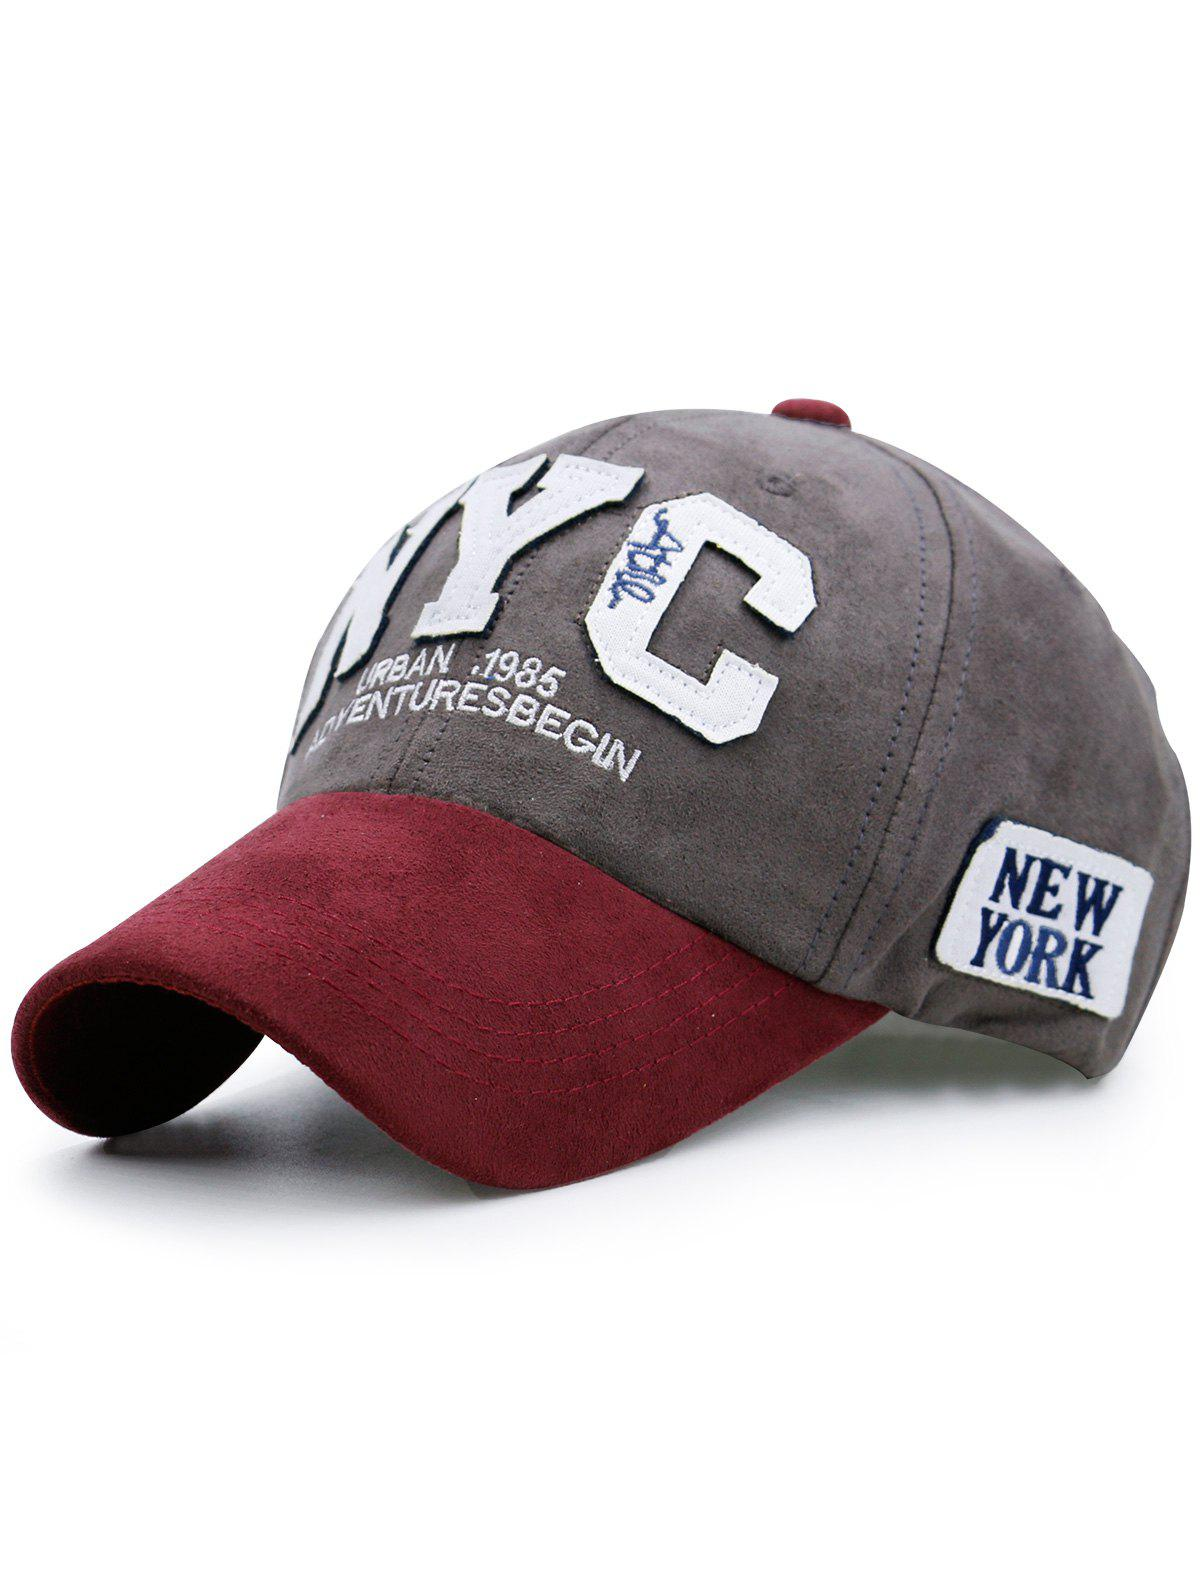 Chapeau de baseball de couleur Block NYC - Gris